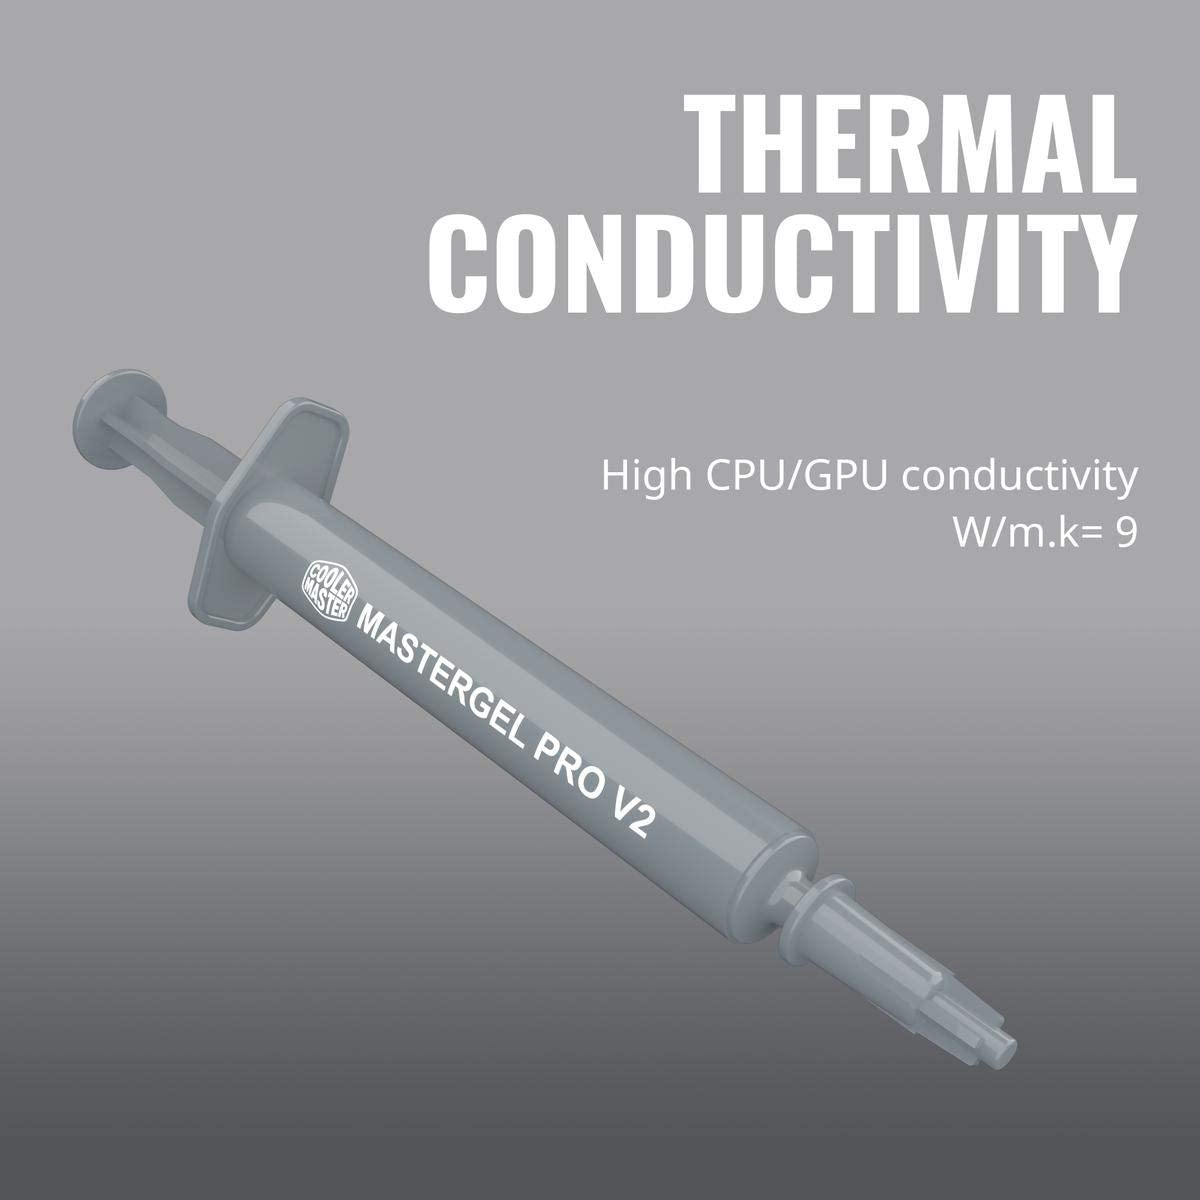 Cooler Master MasterGel Pro V2 High Performance Thermal Compound with High CPU//GPU Conductivity W//m.k= 9m/ Design for CPU and GPU/Coolers